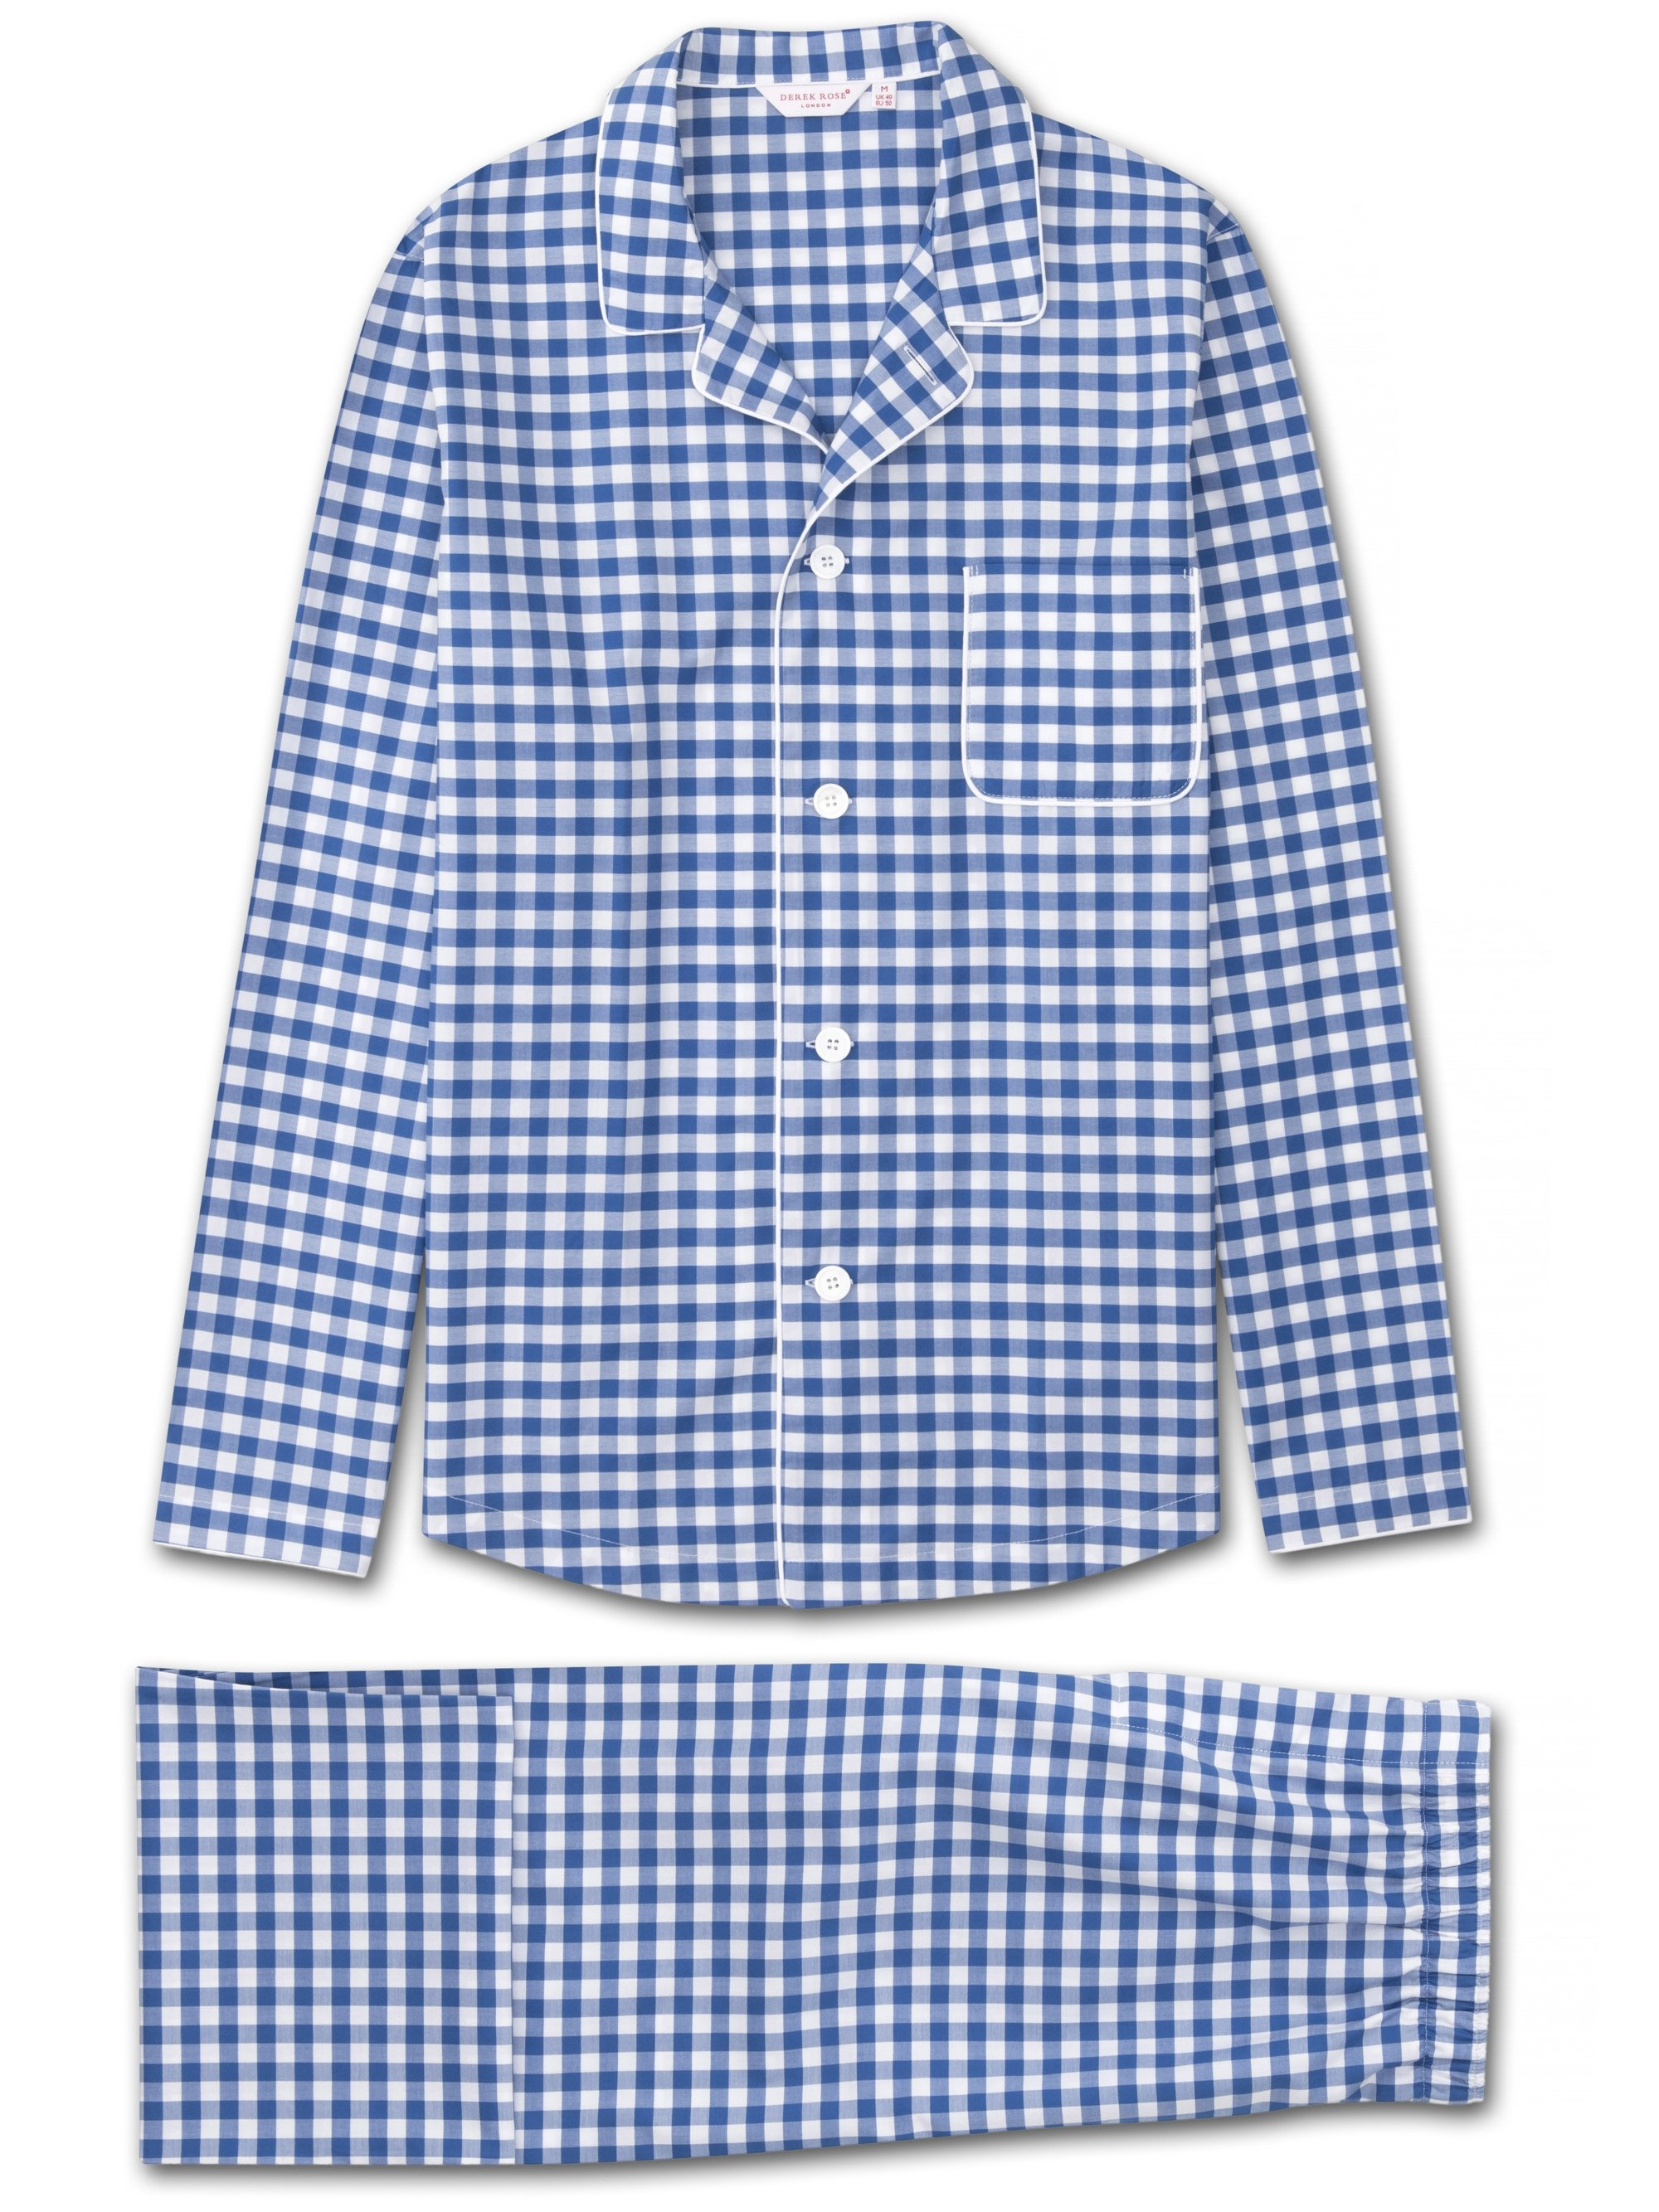 Men's Modern Fit Pyjamas Barker 26 Cotton Check Blue